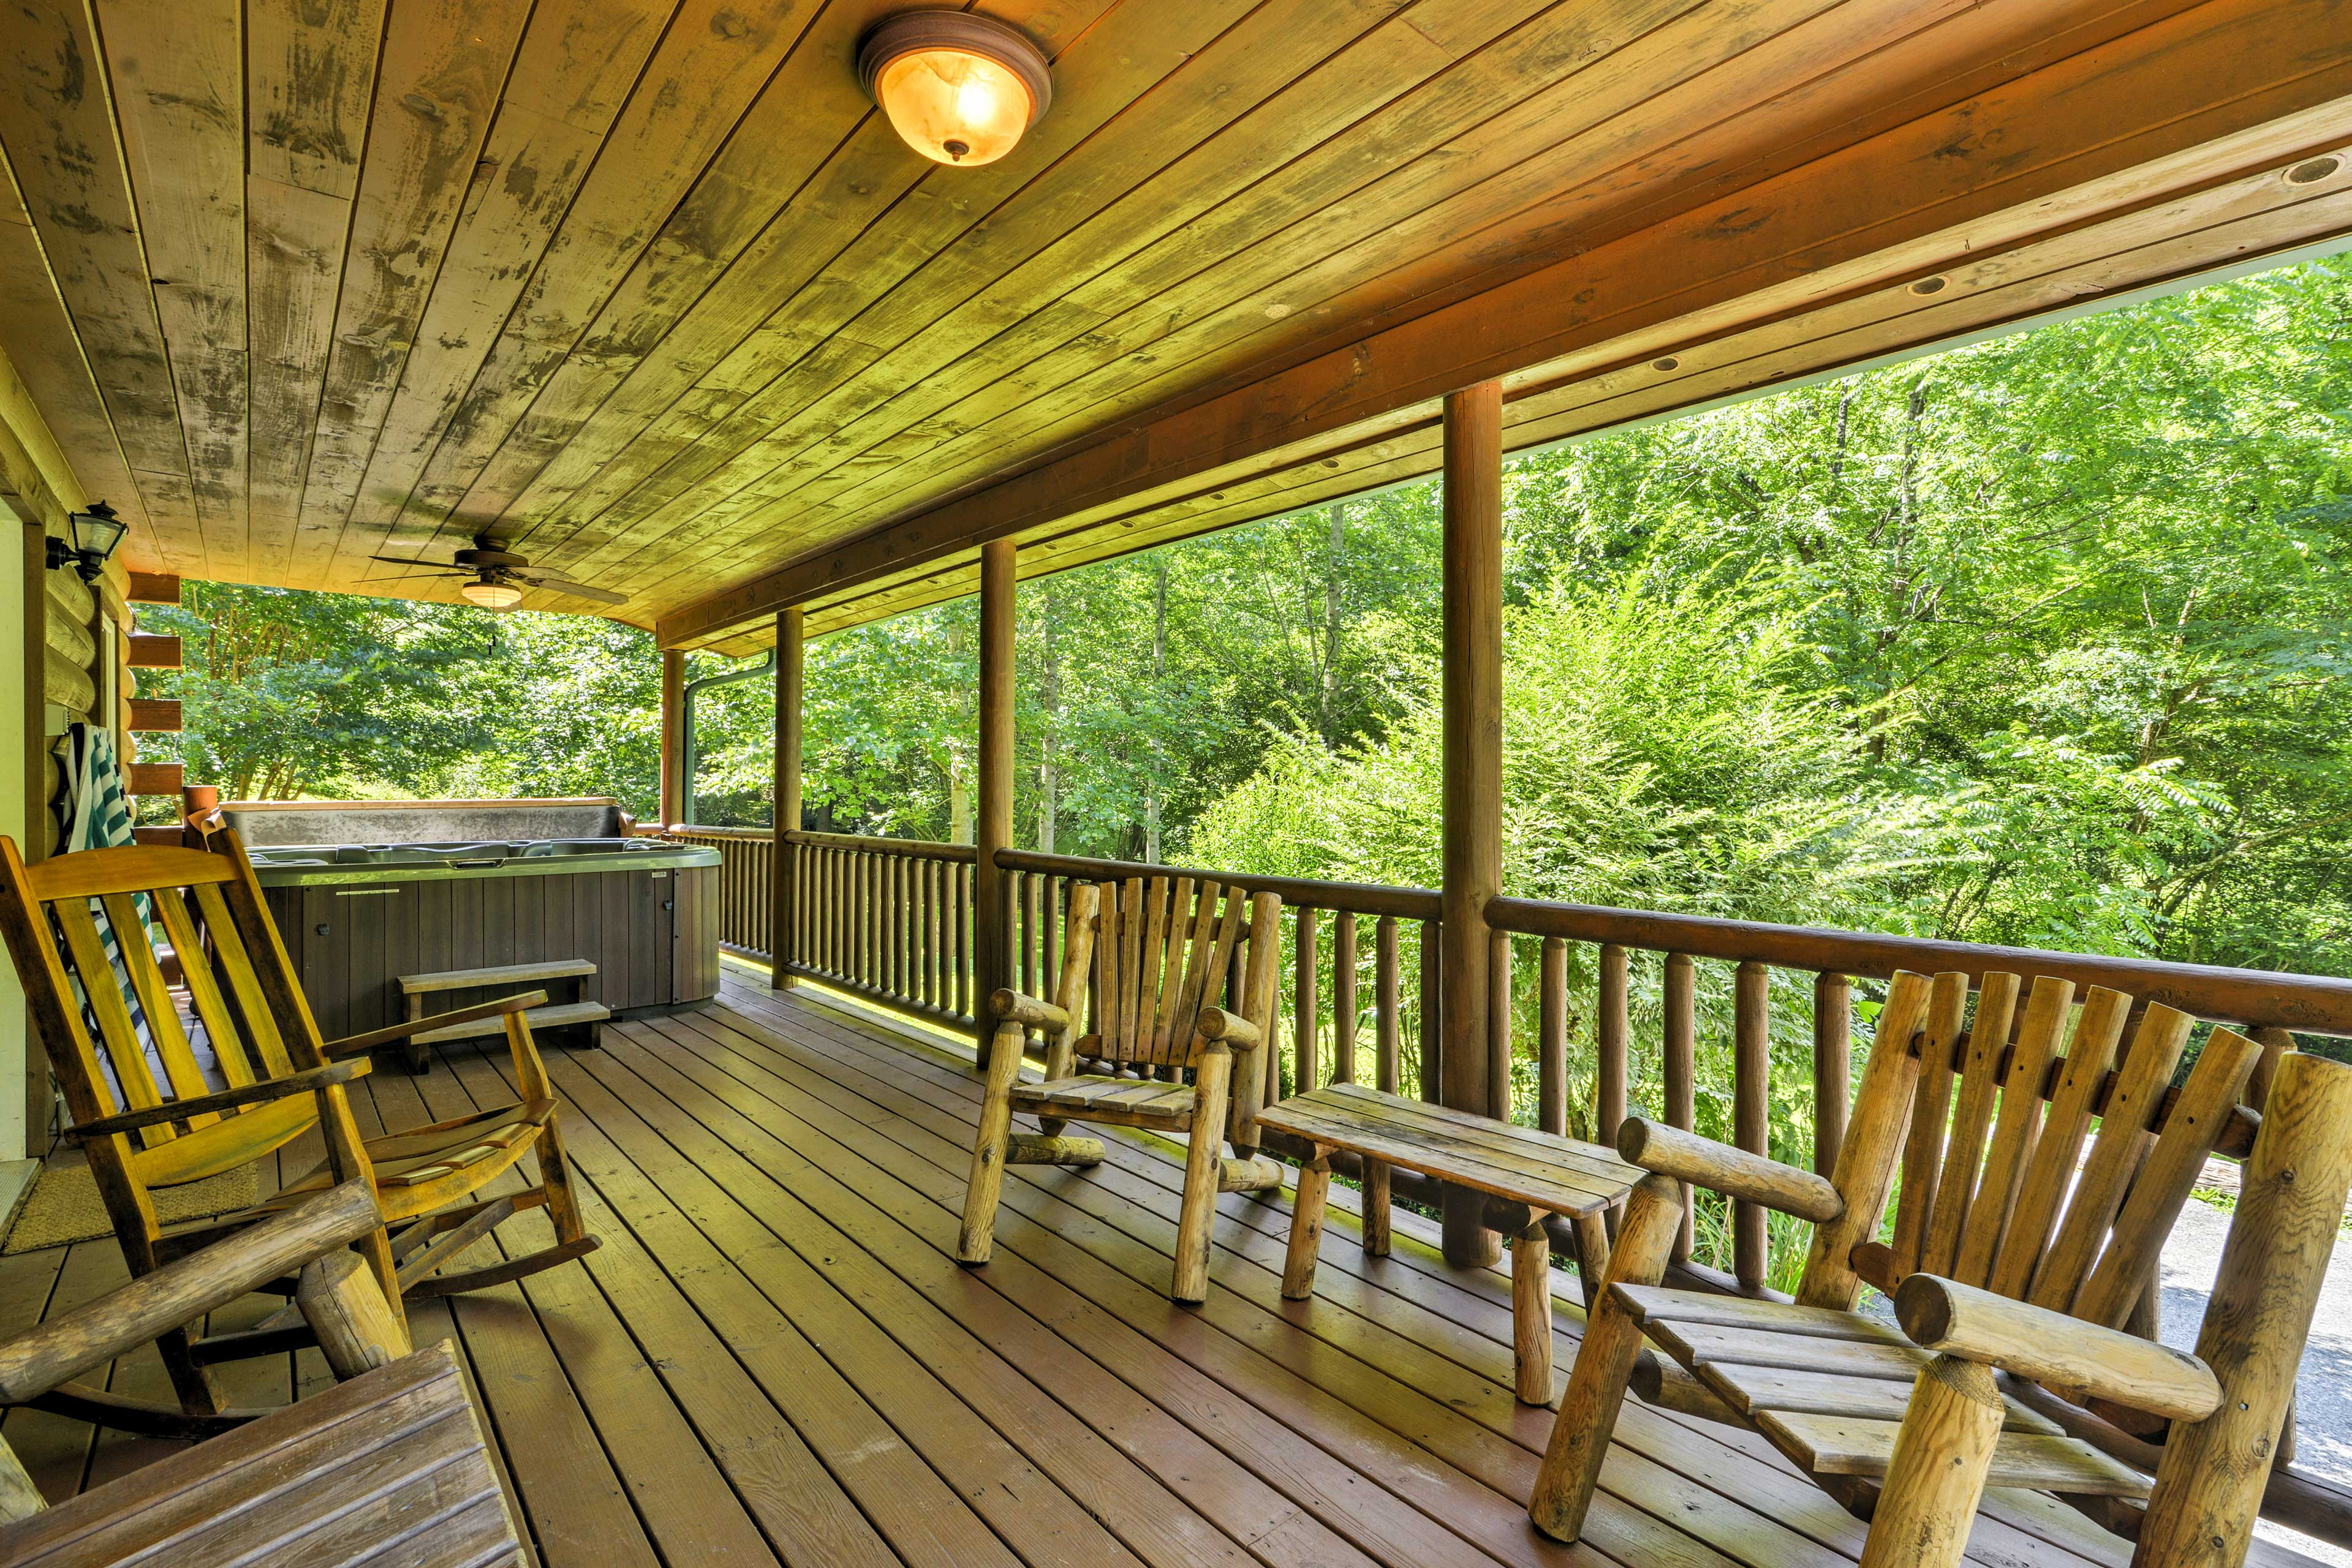 Sip your morning coffee while enjoying the views from the deck.